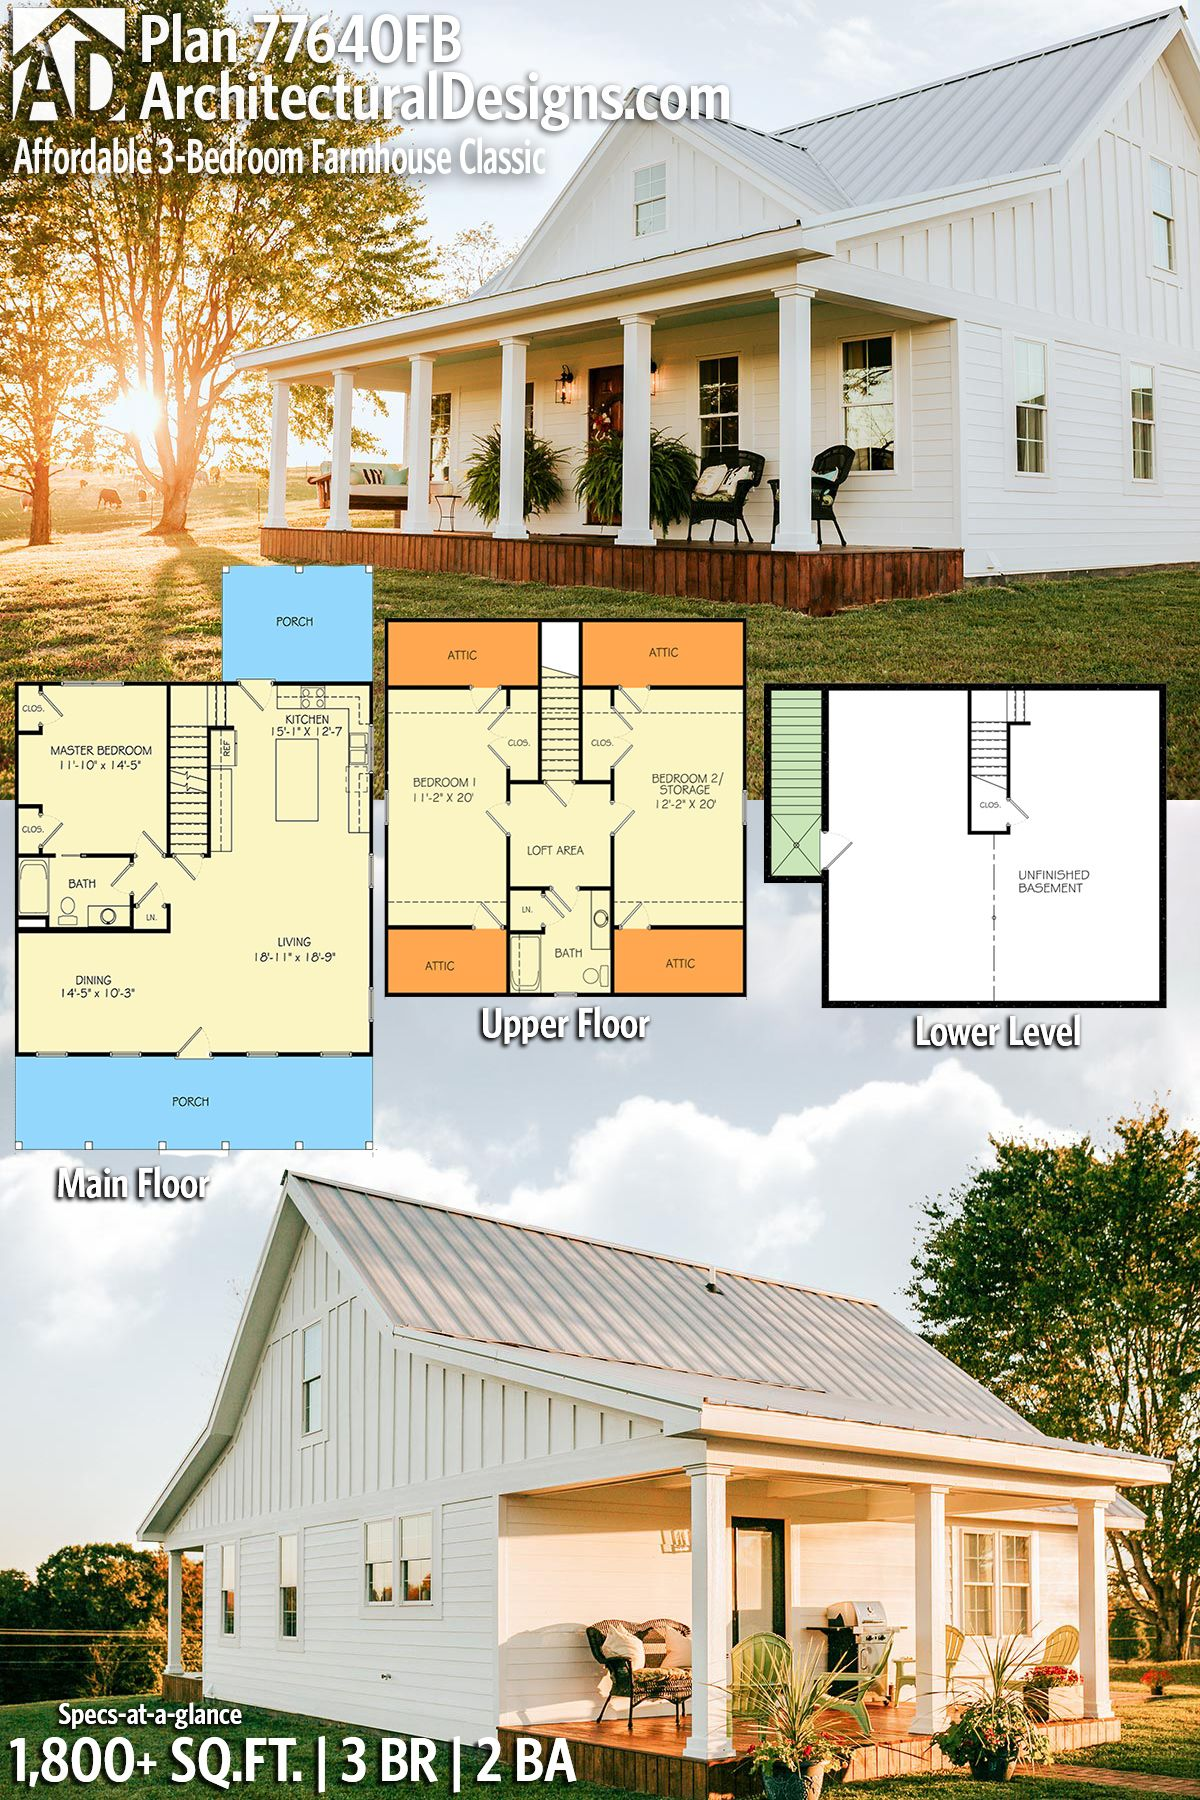 1800s Country Homes: Plan 77640FB: Bright And Airy Country Farmhouse In 2019